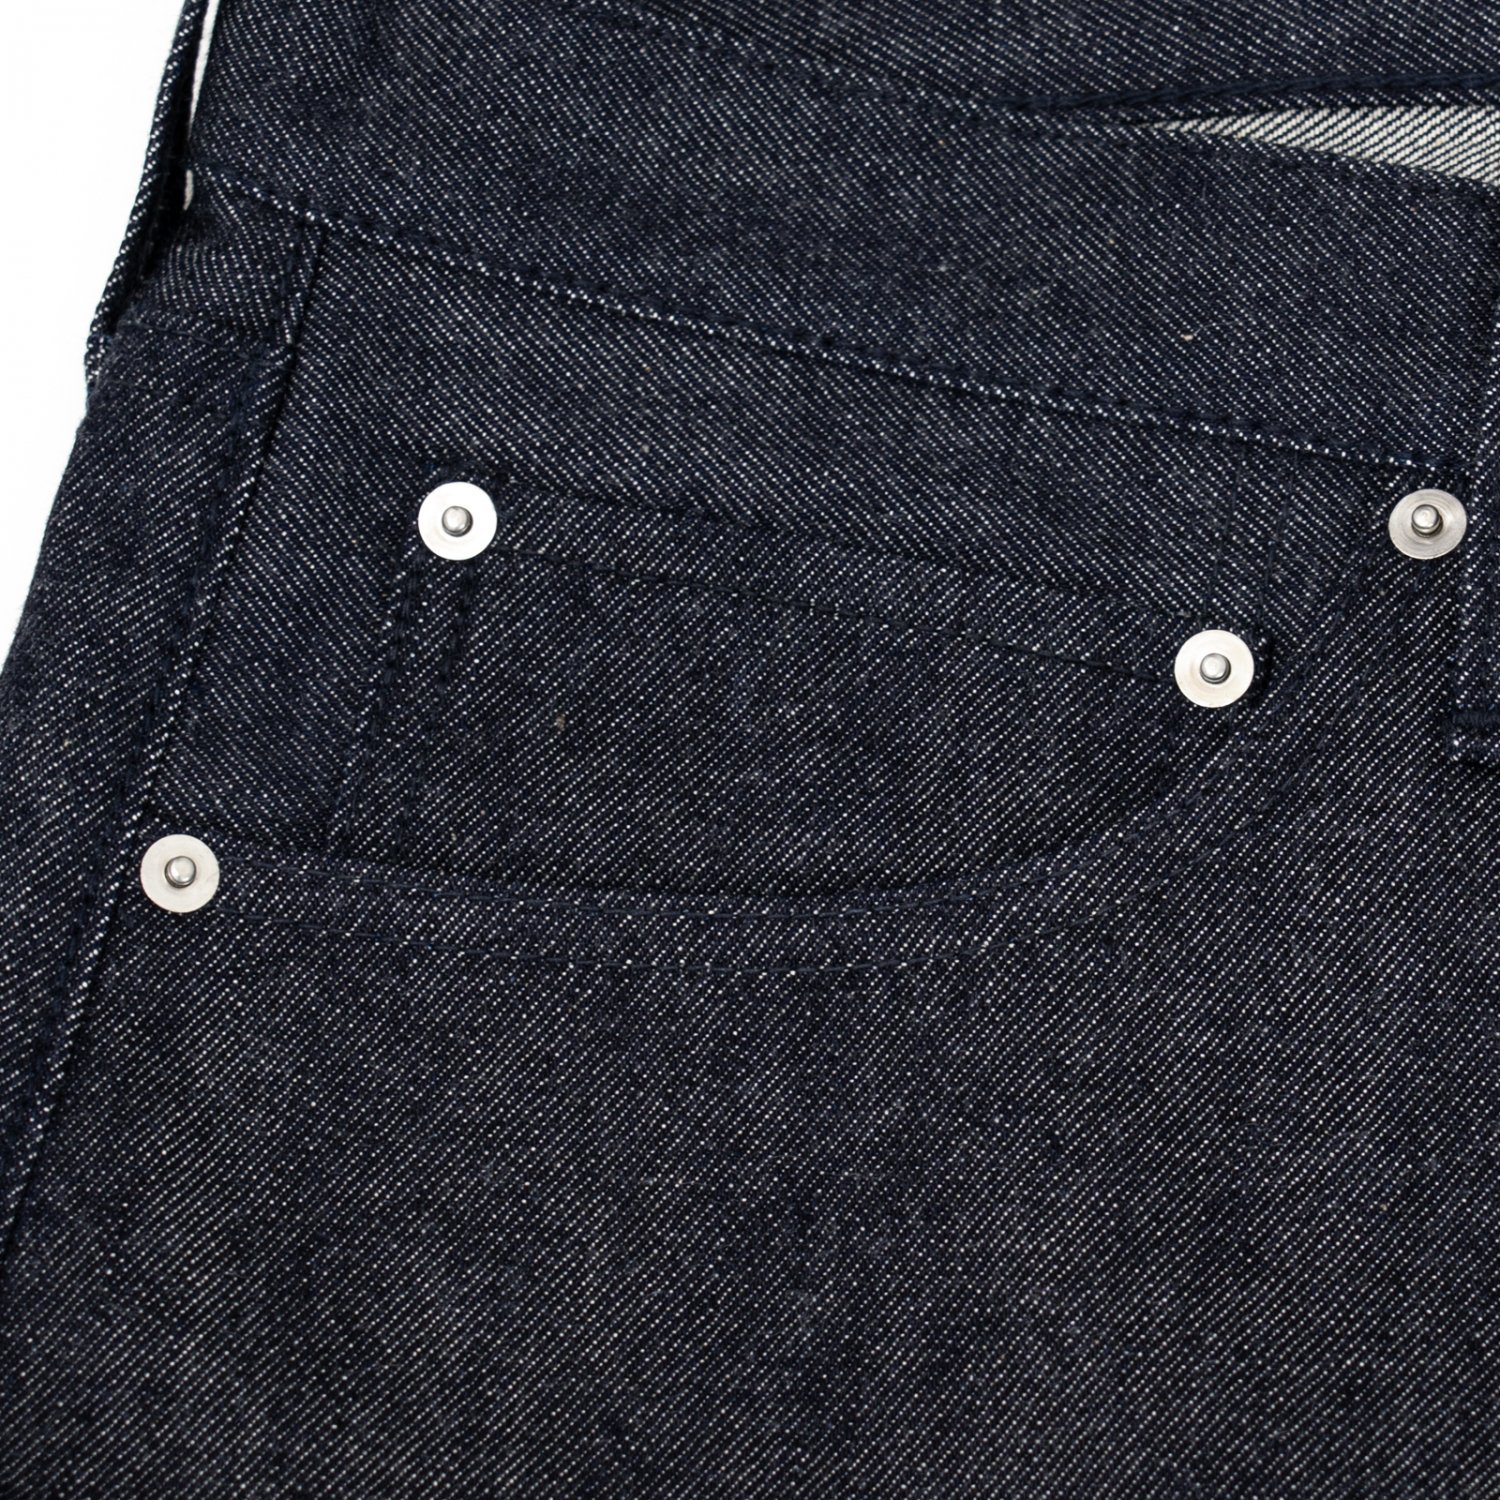 NORITAKE/HARADA * Denim Pants 40inch Short